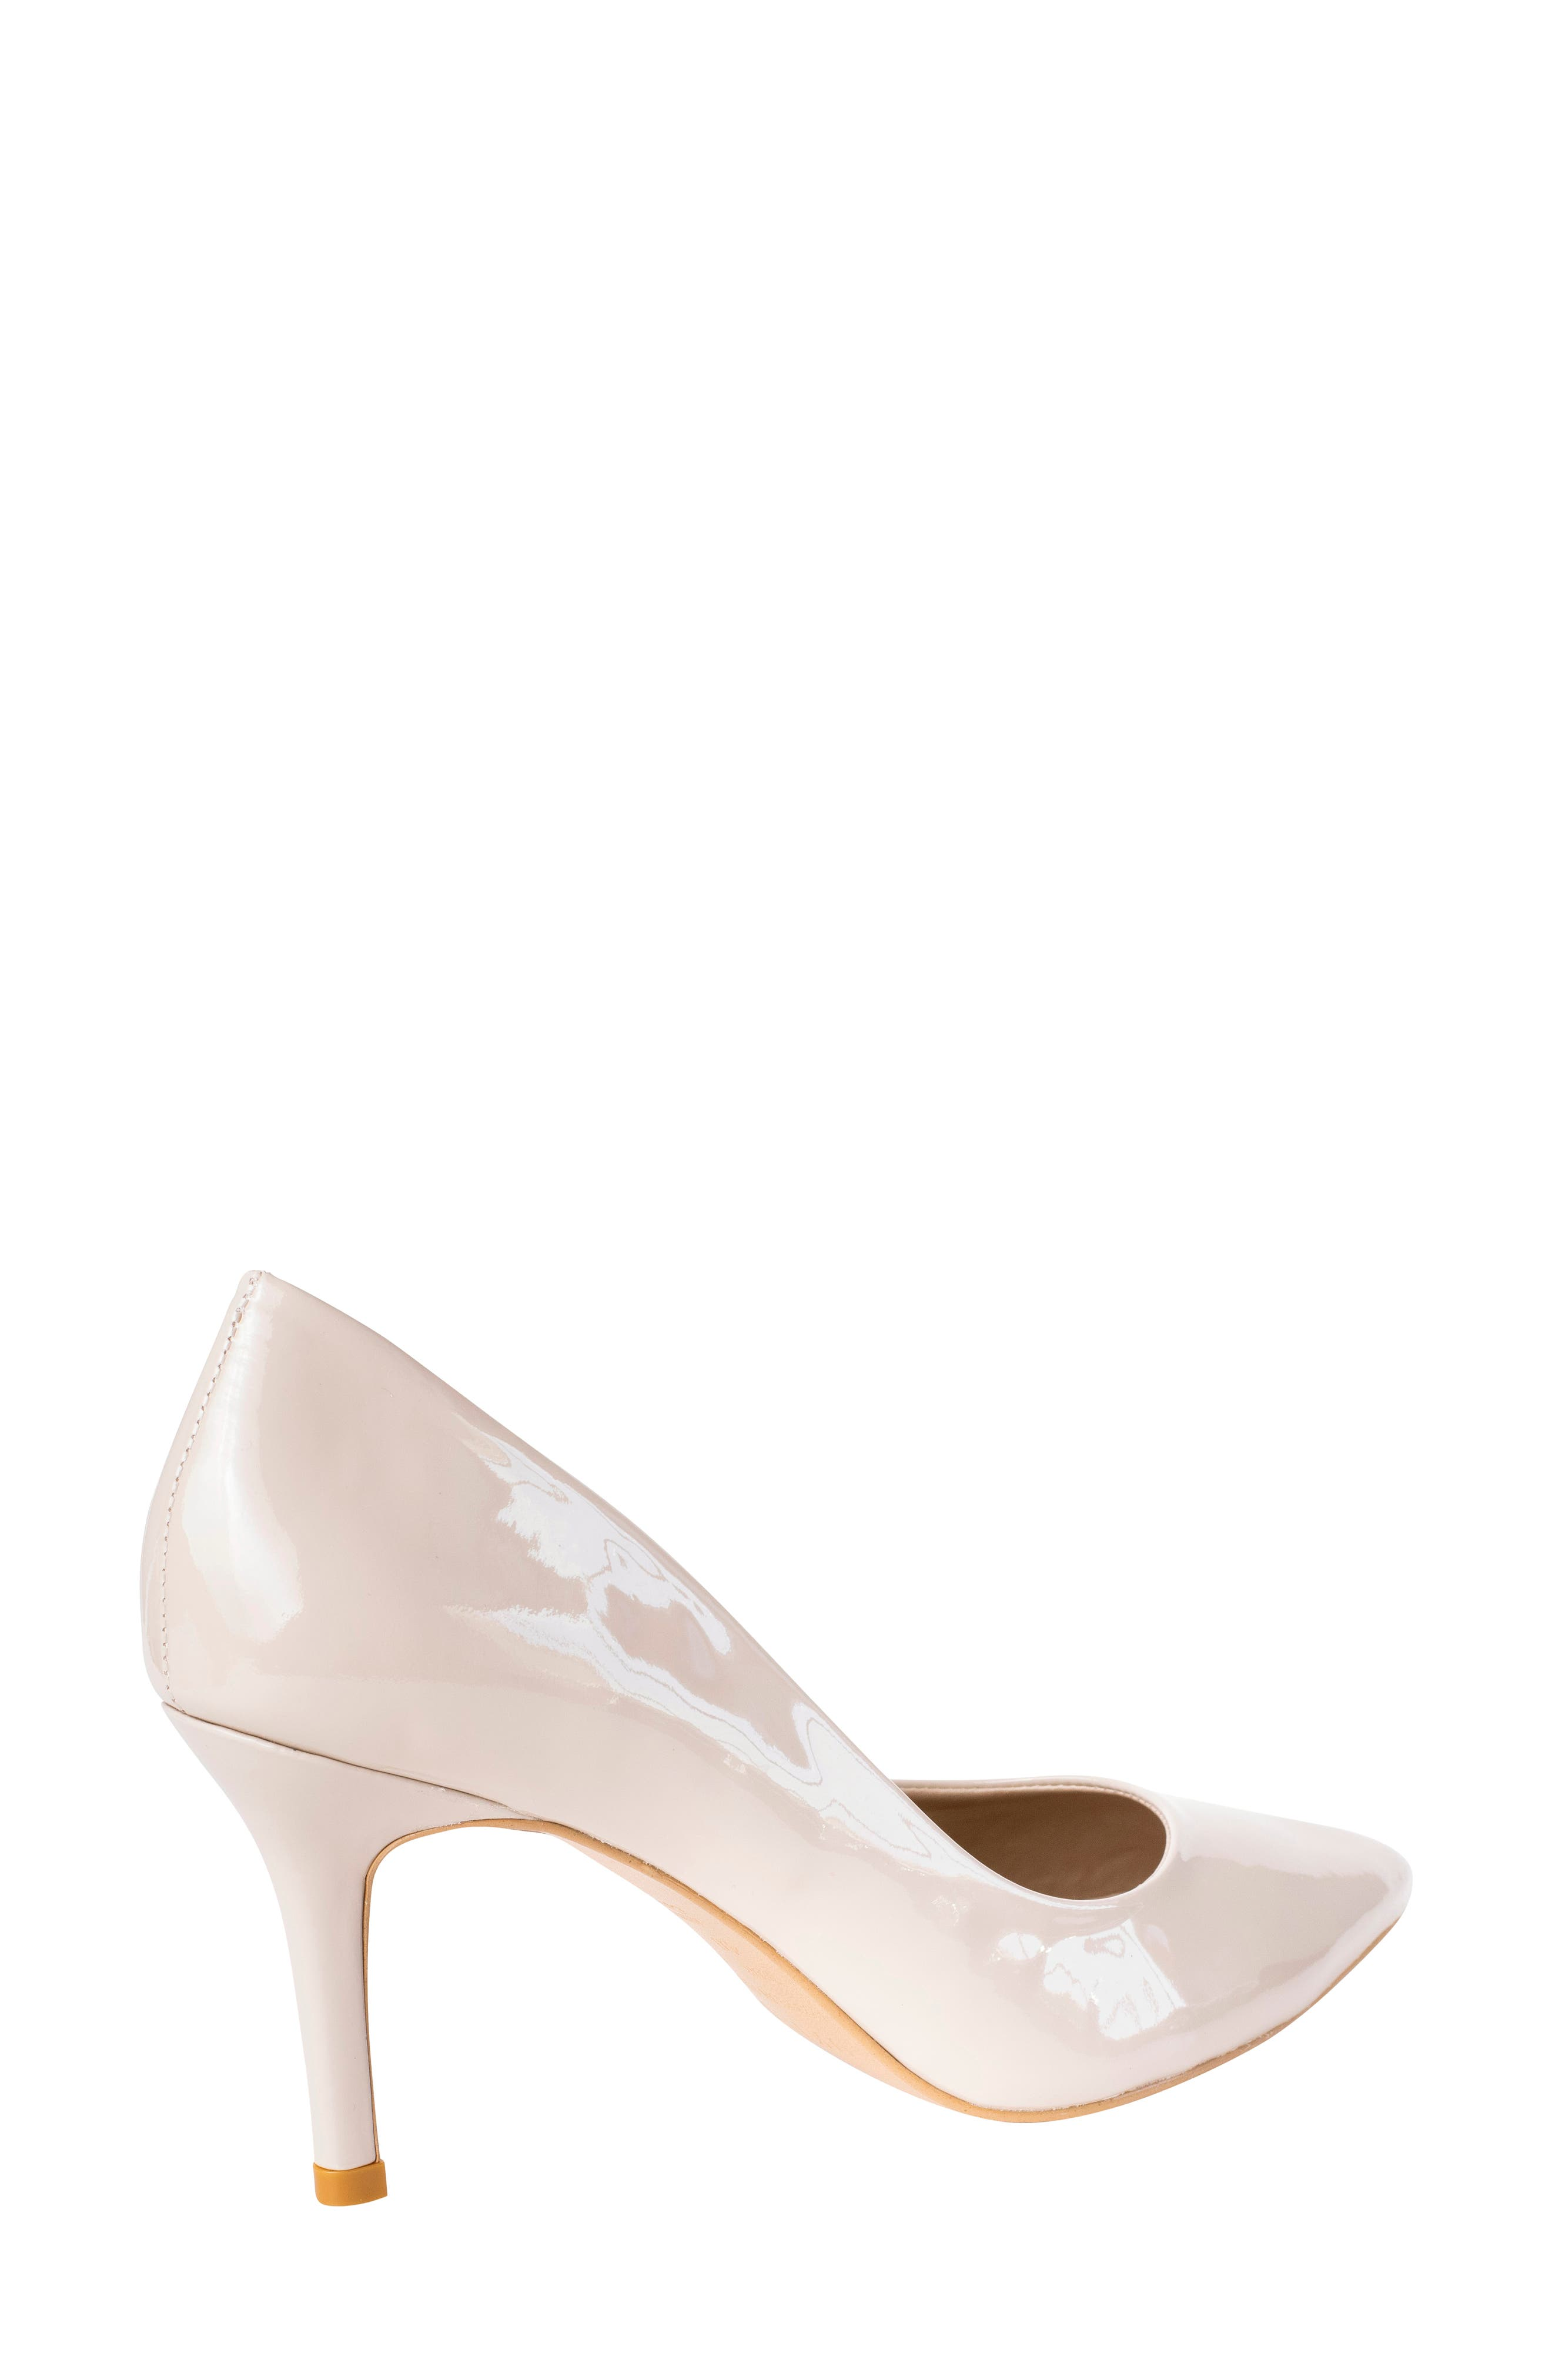 Anya Pointy Toe Pump,                             Alternate thumbnail 2, color,                             NUDE PATENT LEATHER